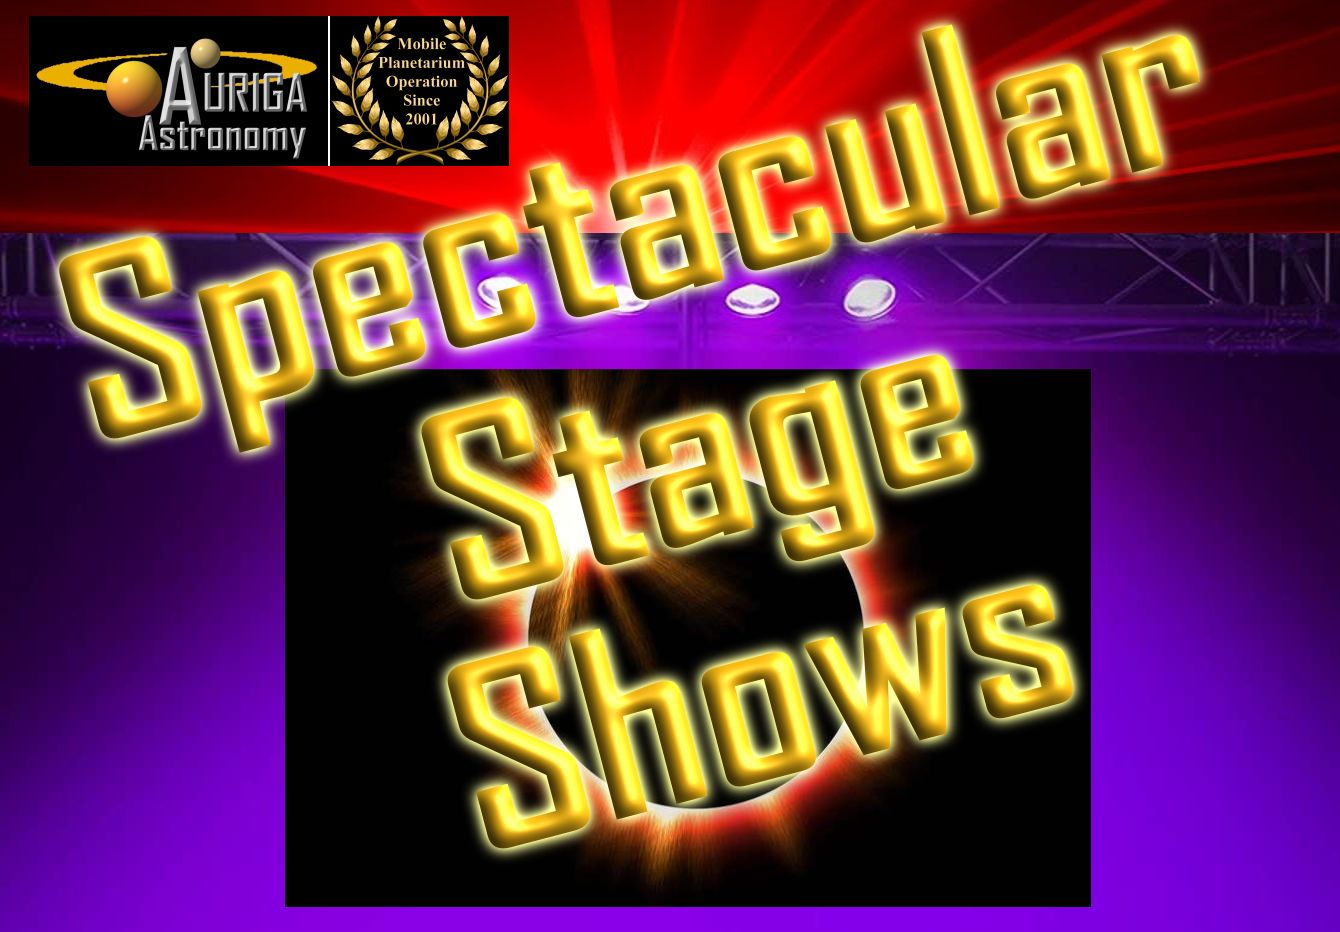 Astronomy Stage Shows